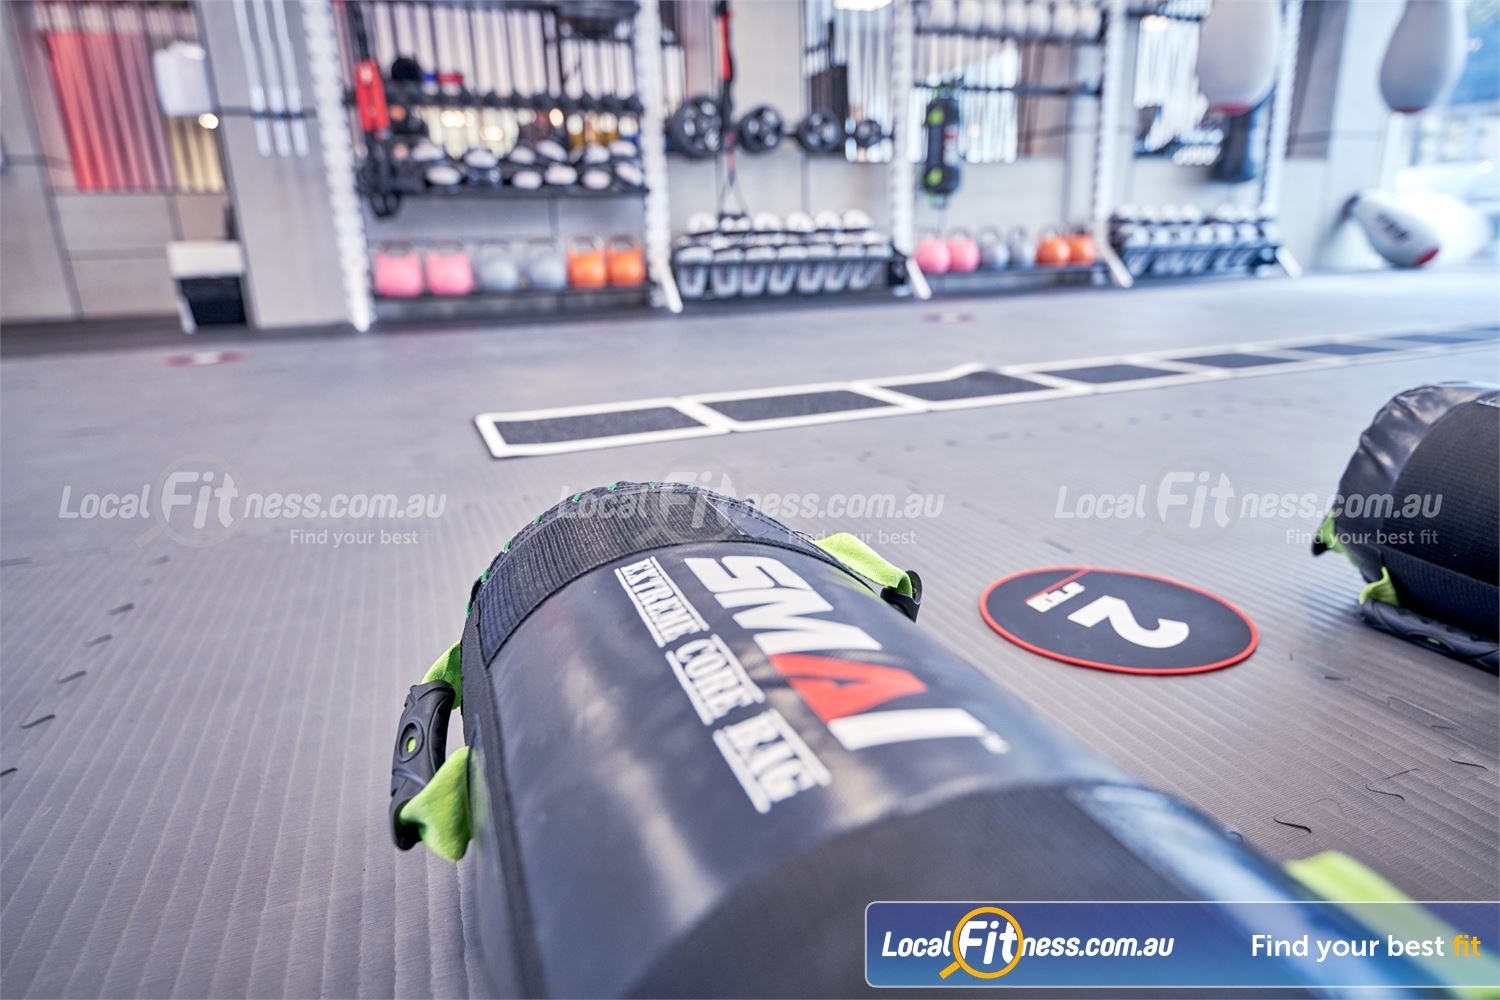 Goodlife Health Clubs Knox City Near Scoresby Regular gym workouts don't compare to the experience inside an Arena studio.